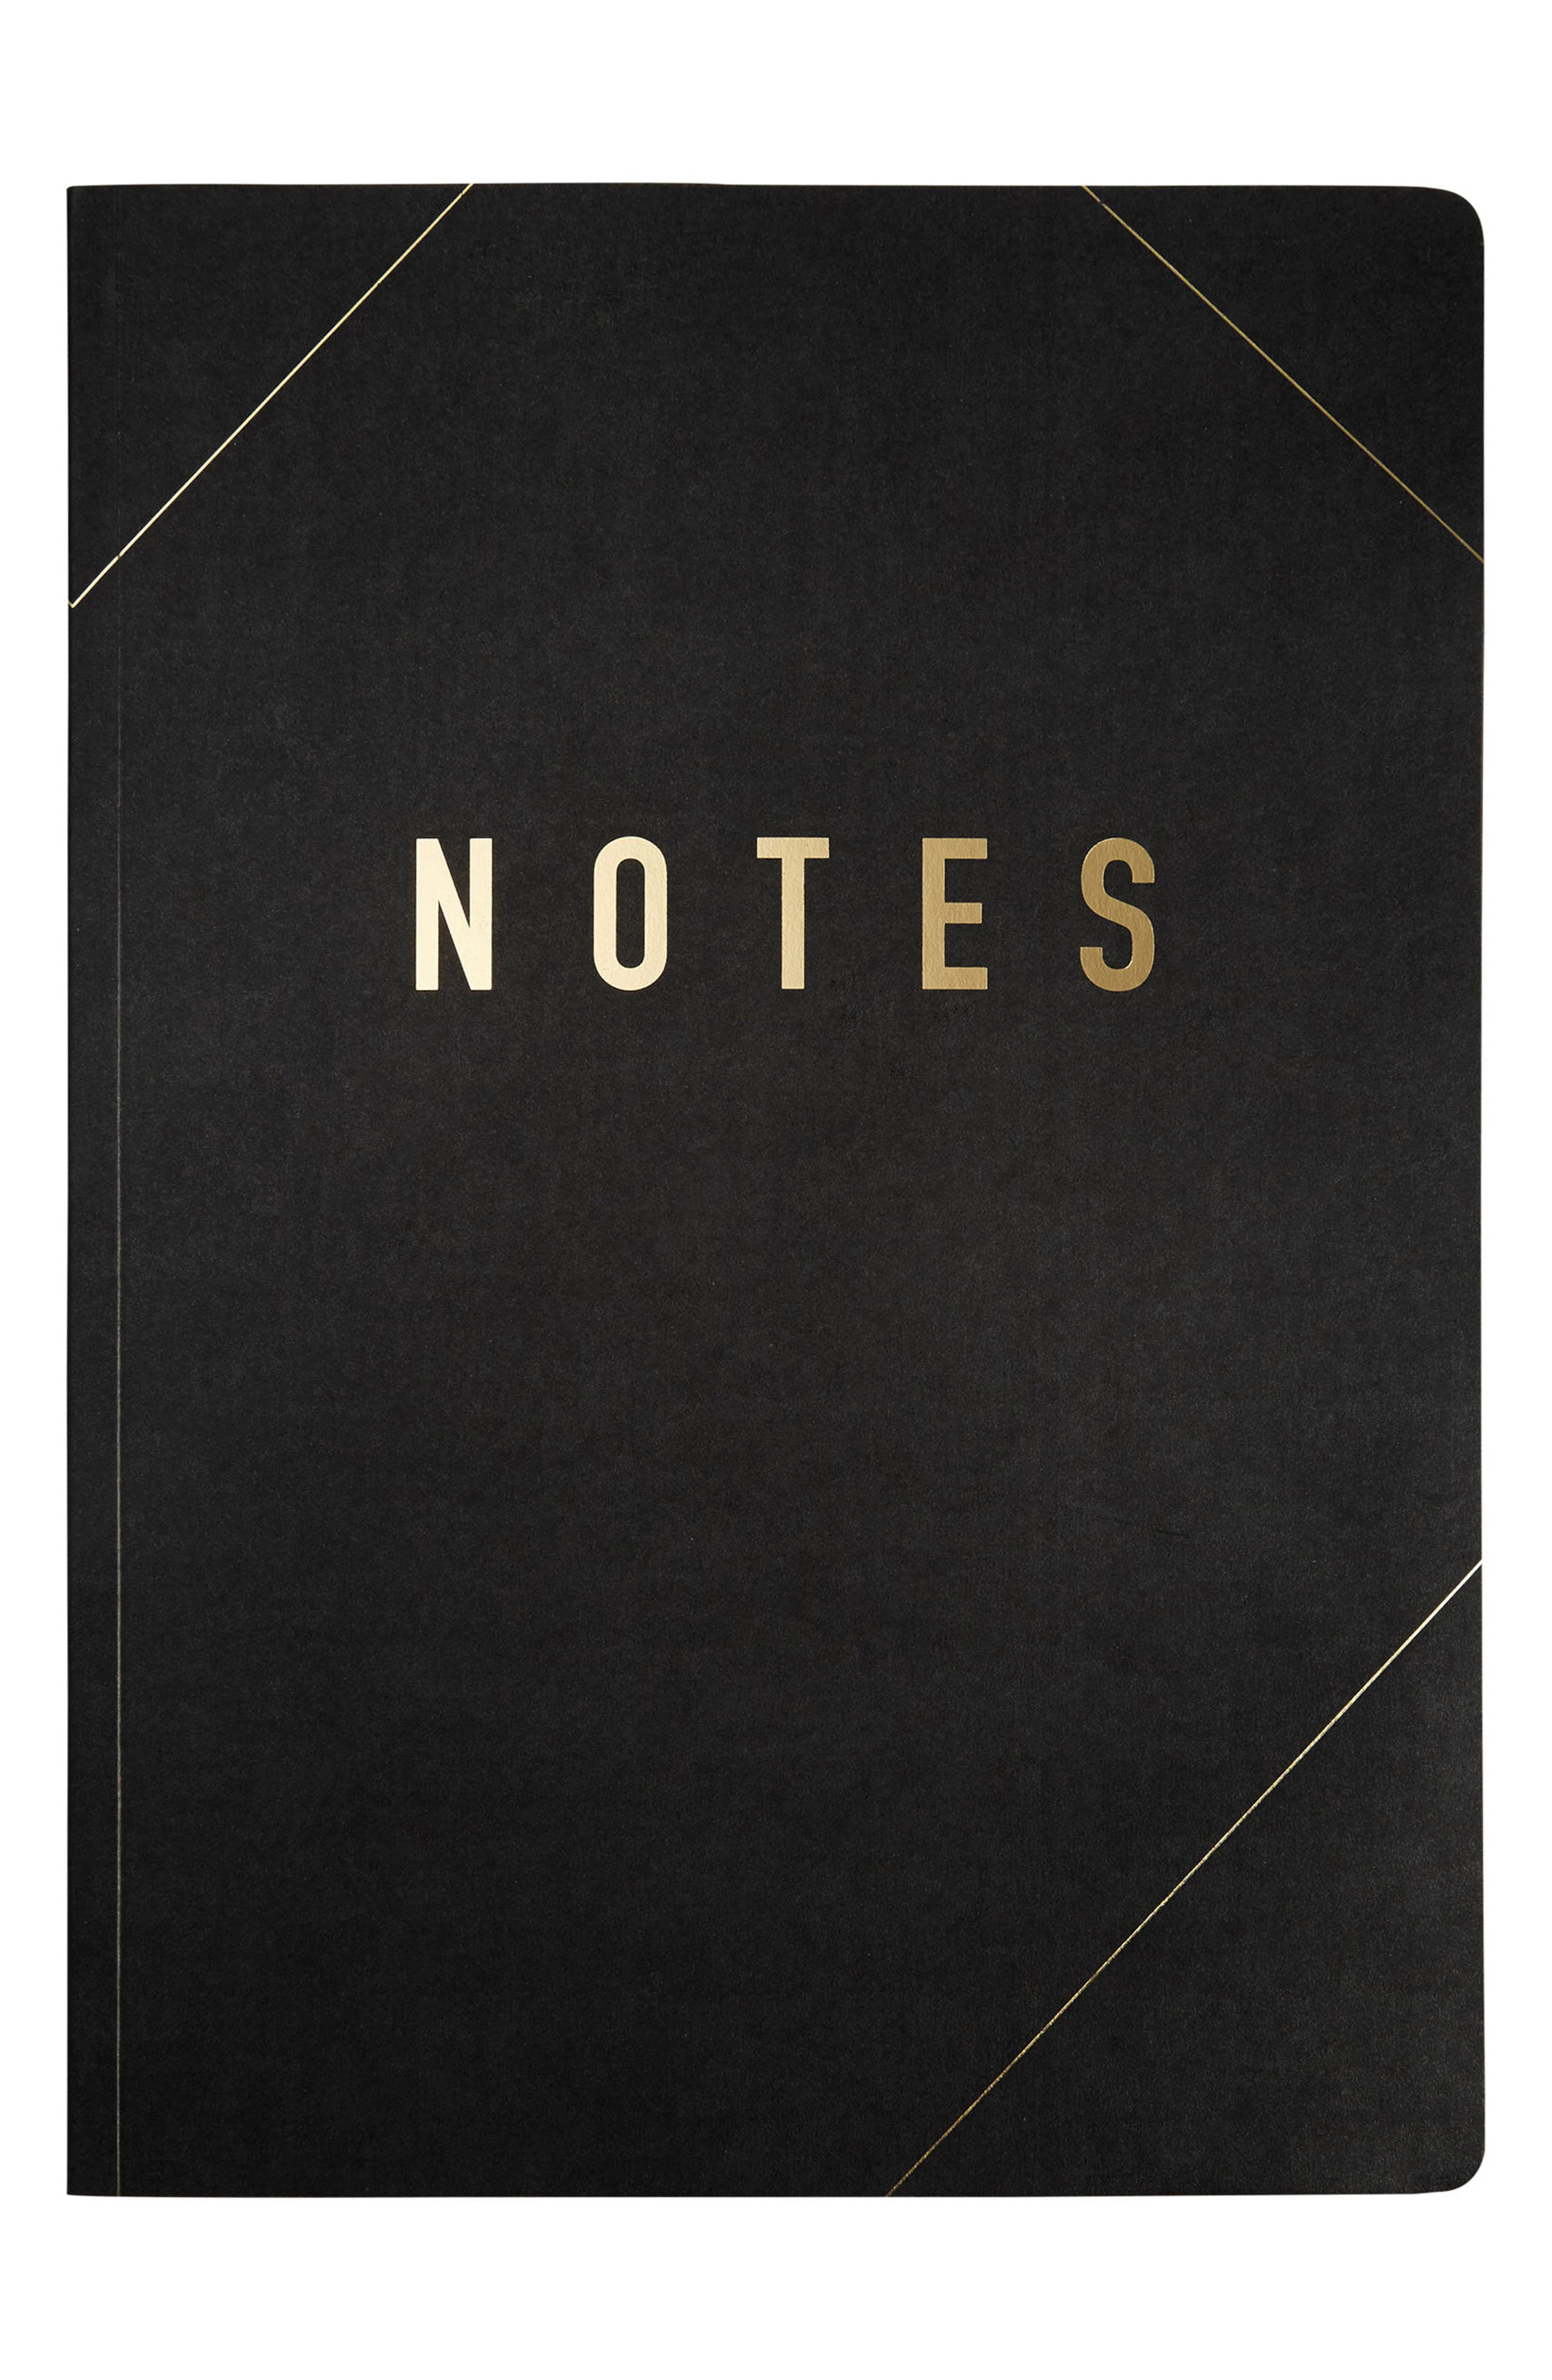 A4 Notebook Refill,                         Main,                         color, Black/ Gold